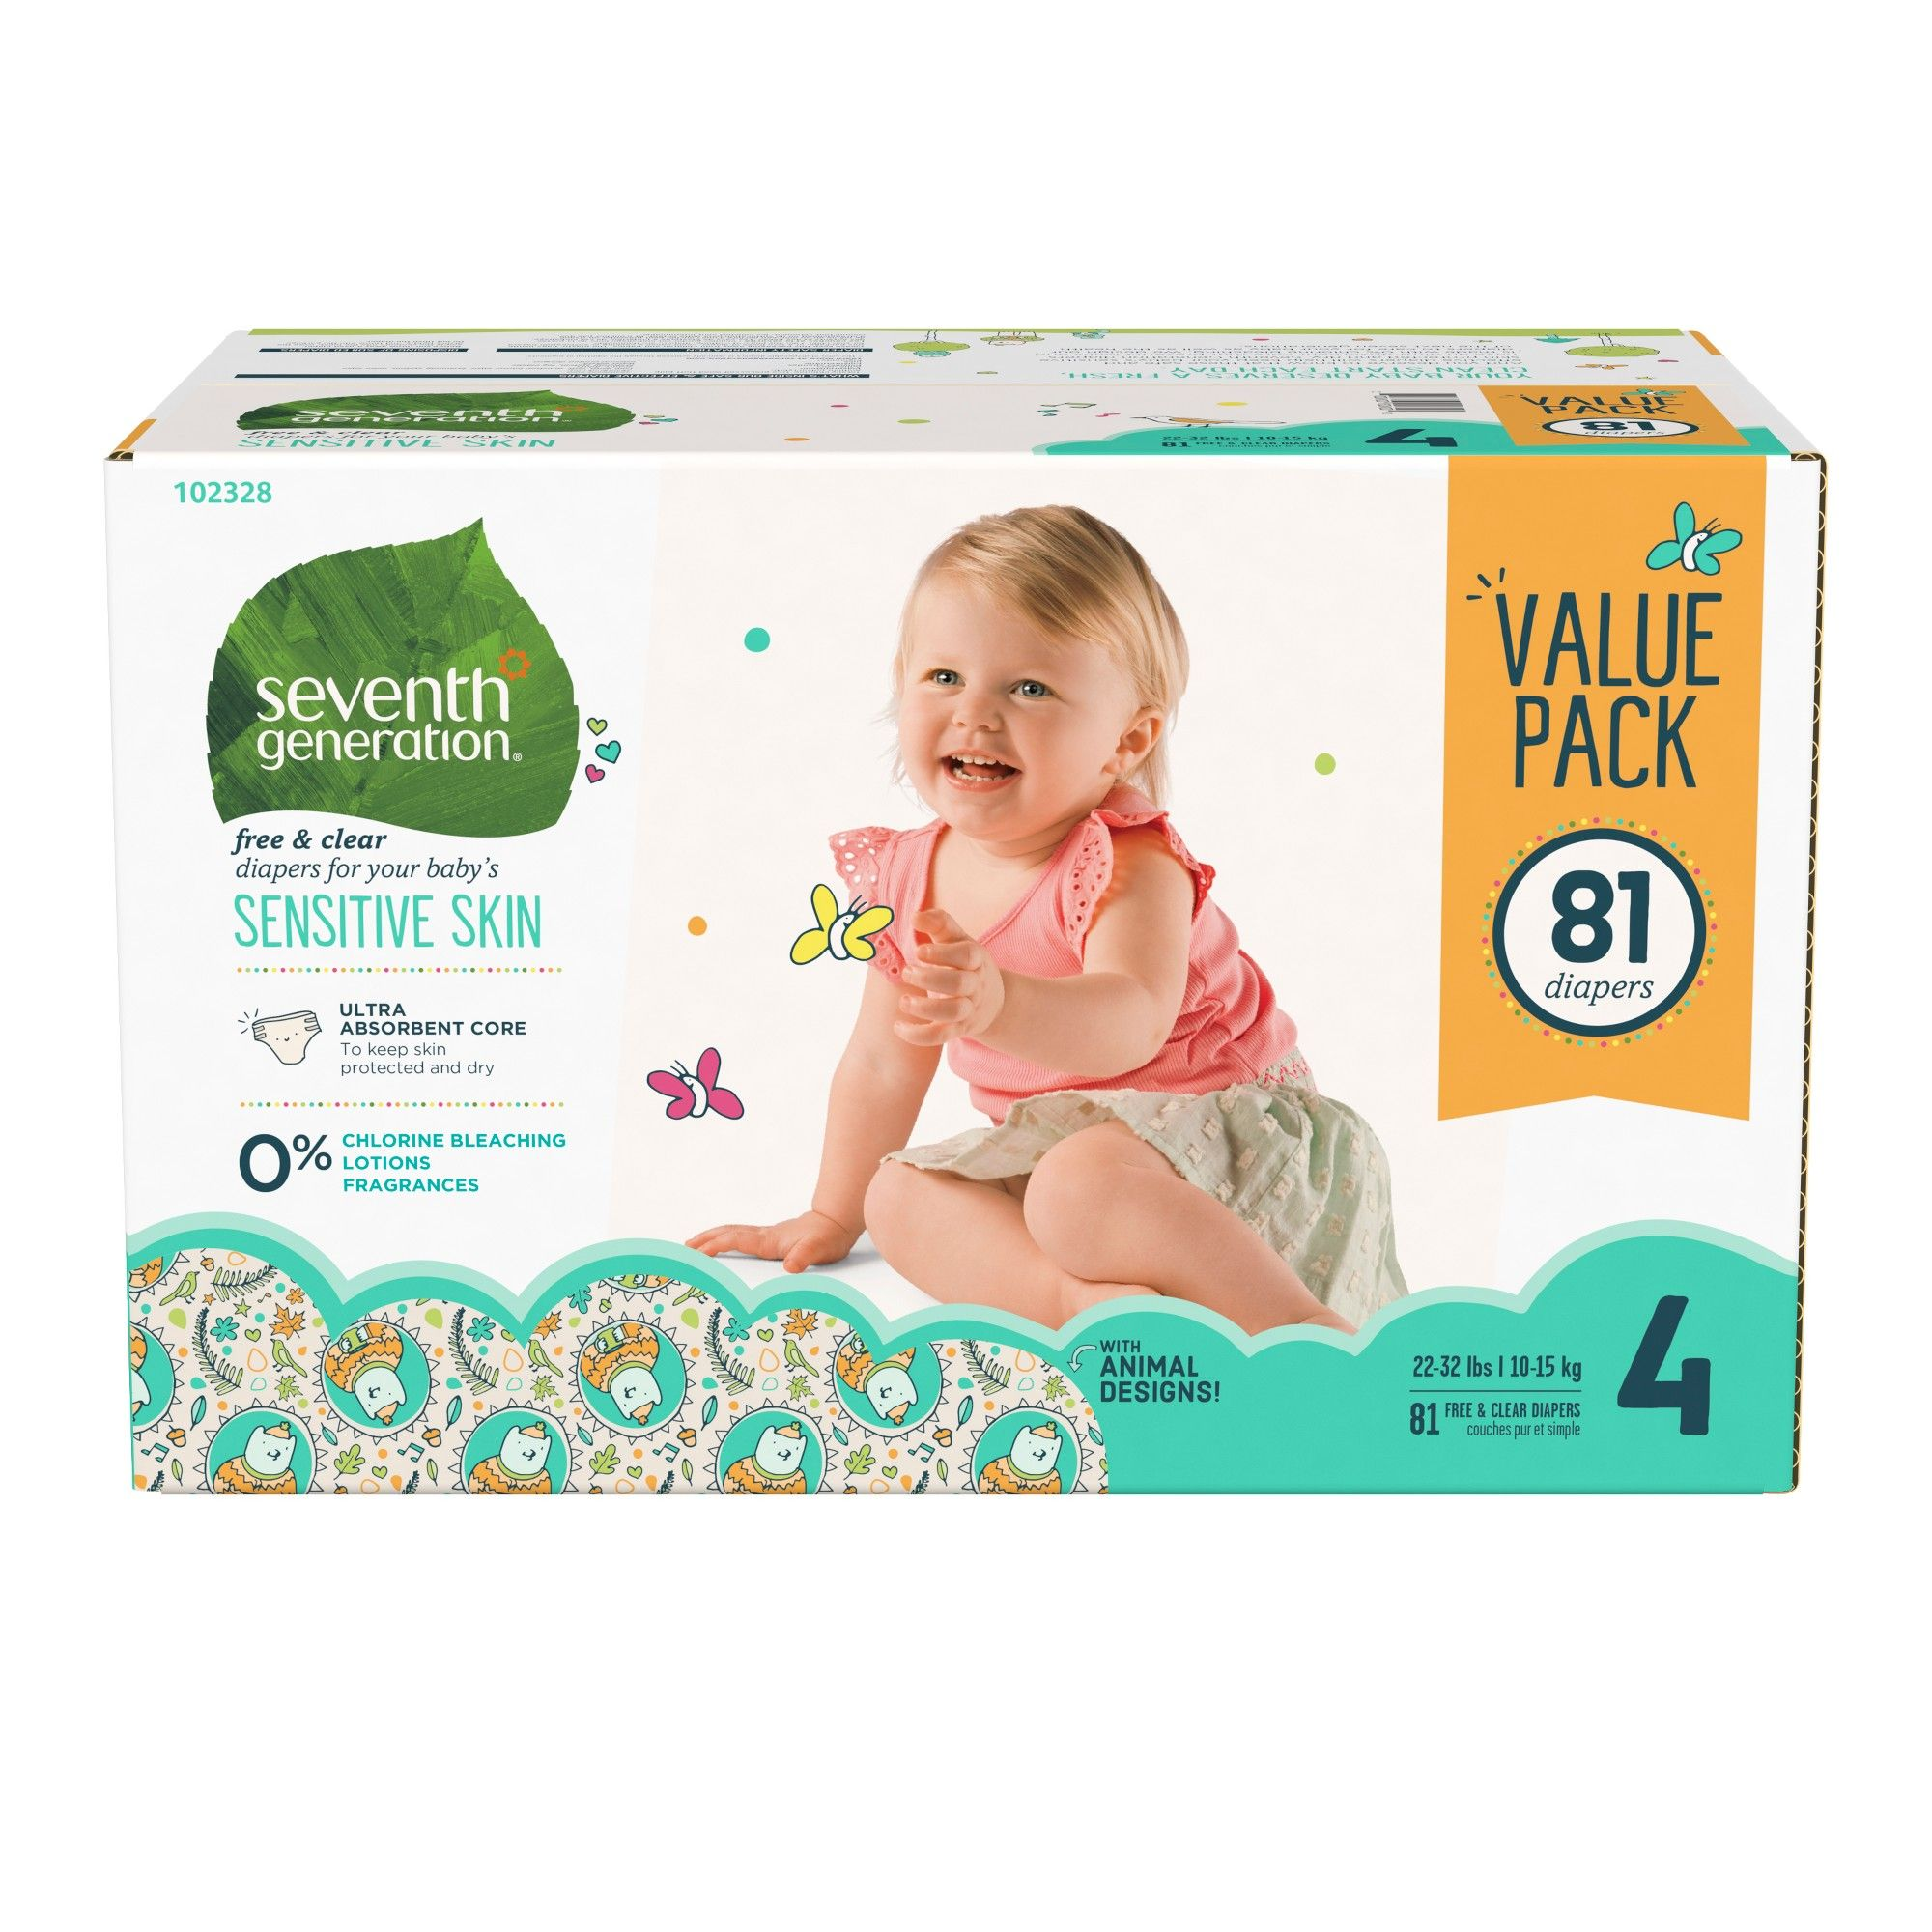 Newborn 1 pk Seventh Generation Free /& Clear Unbleached Diapers